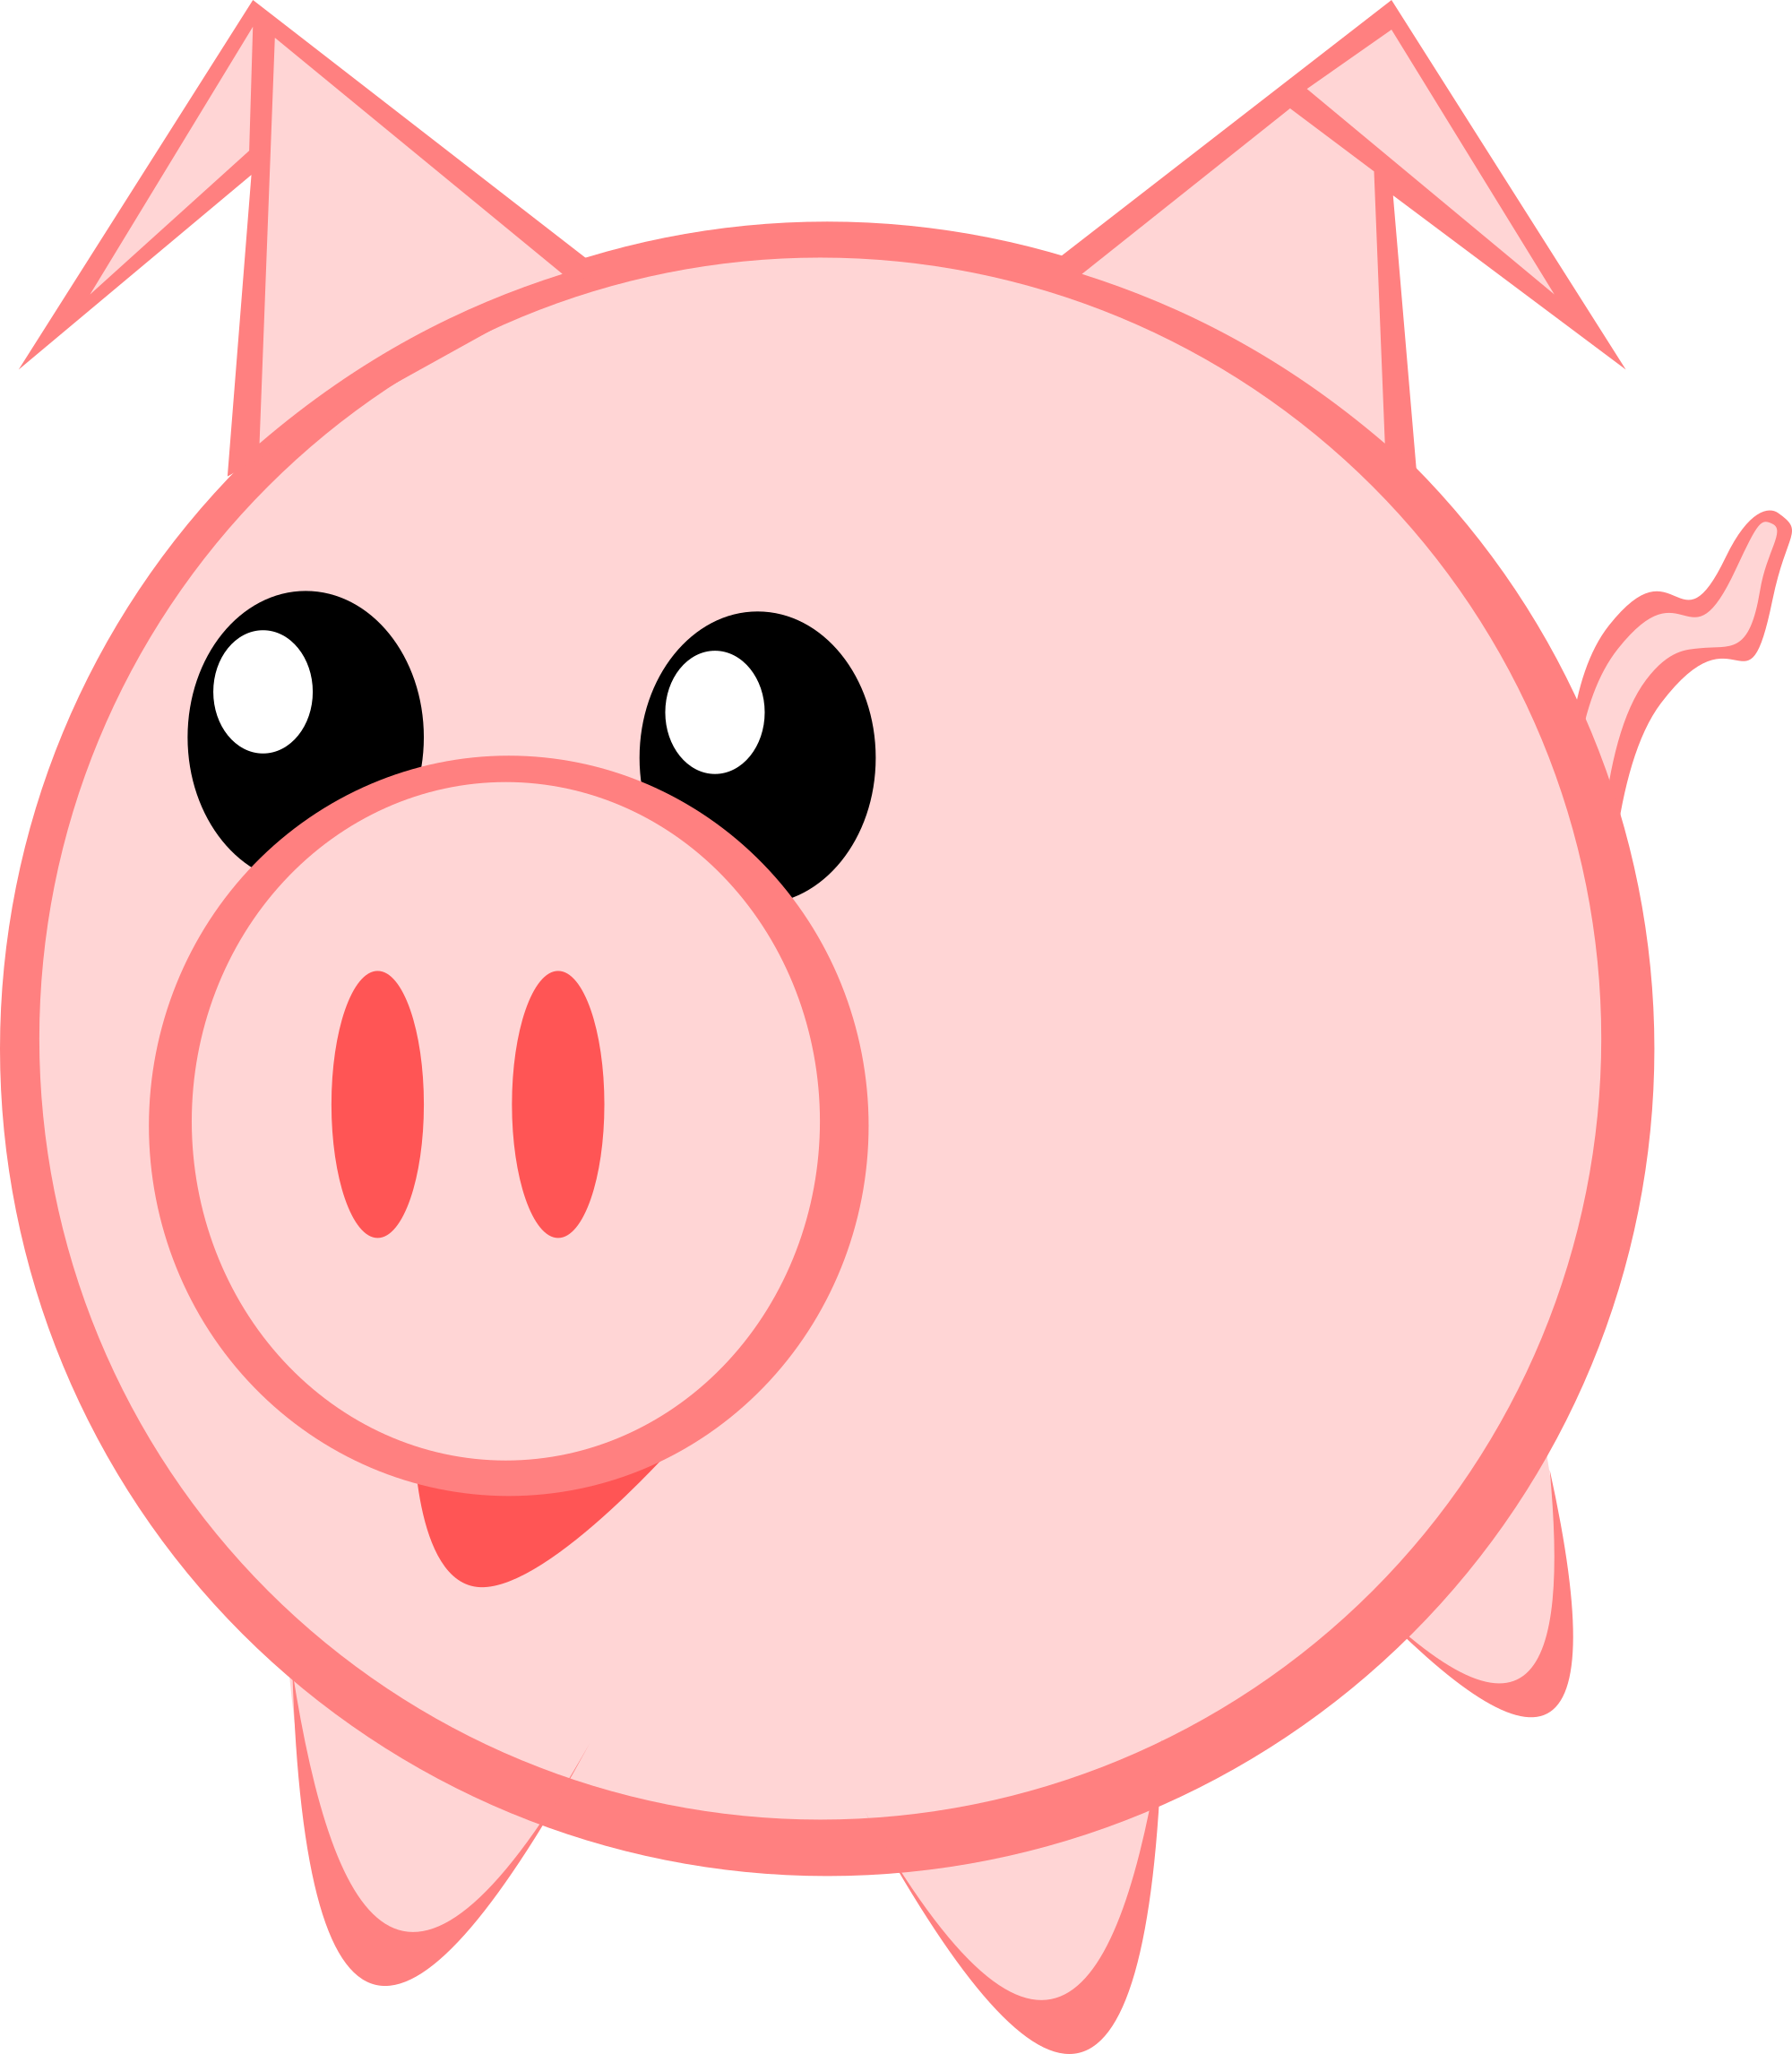 Free pigs clipart and vector images.